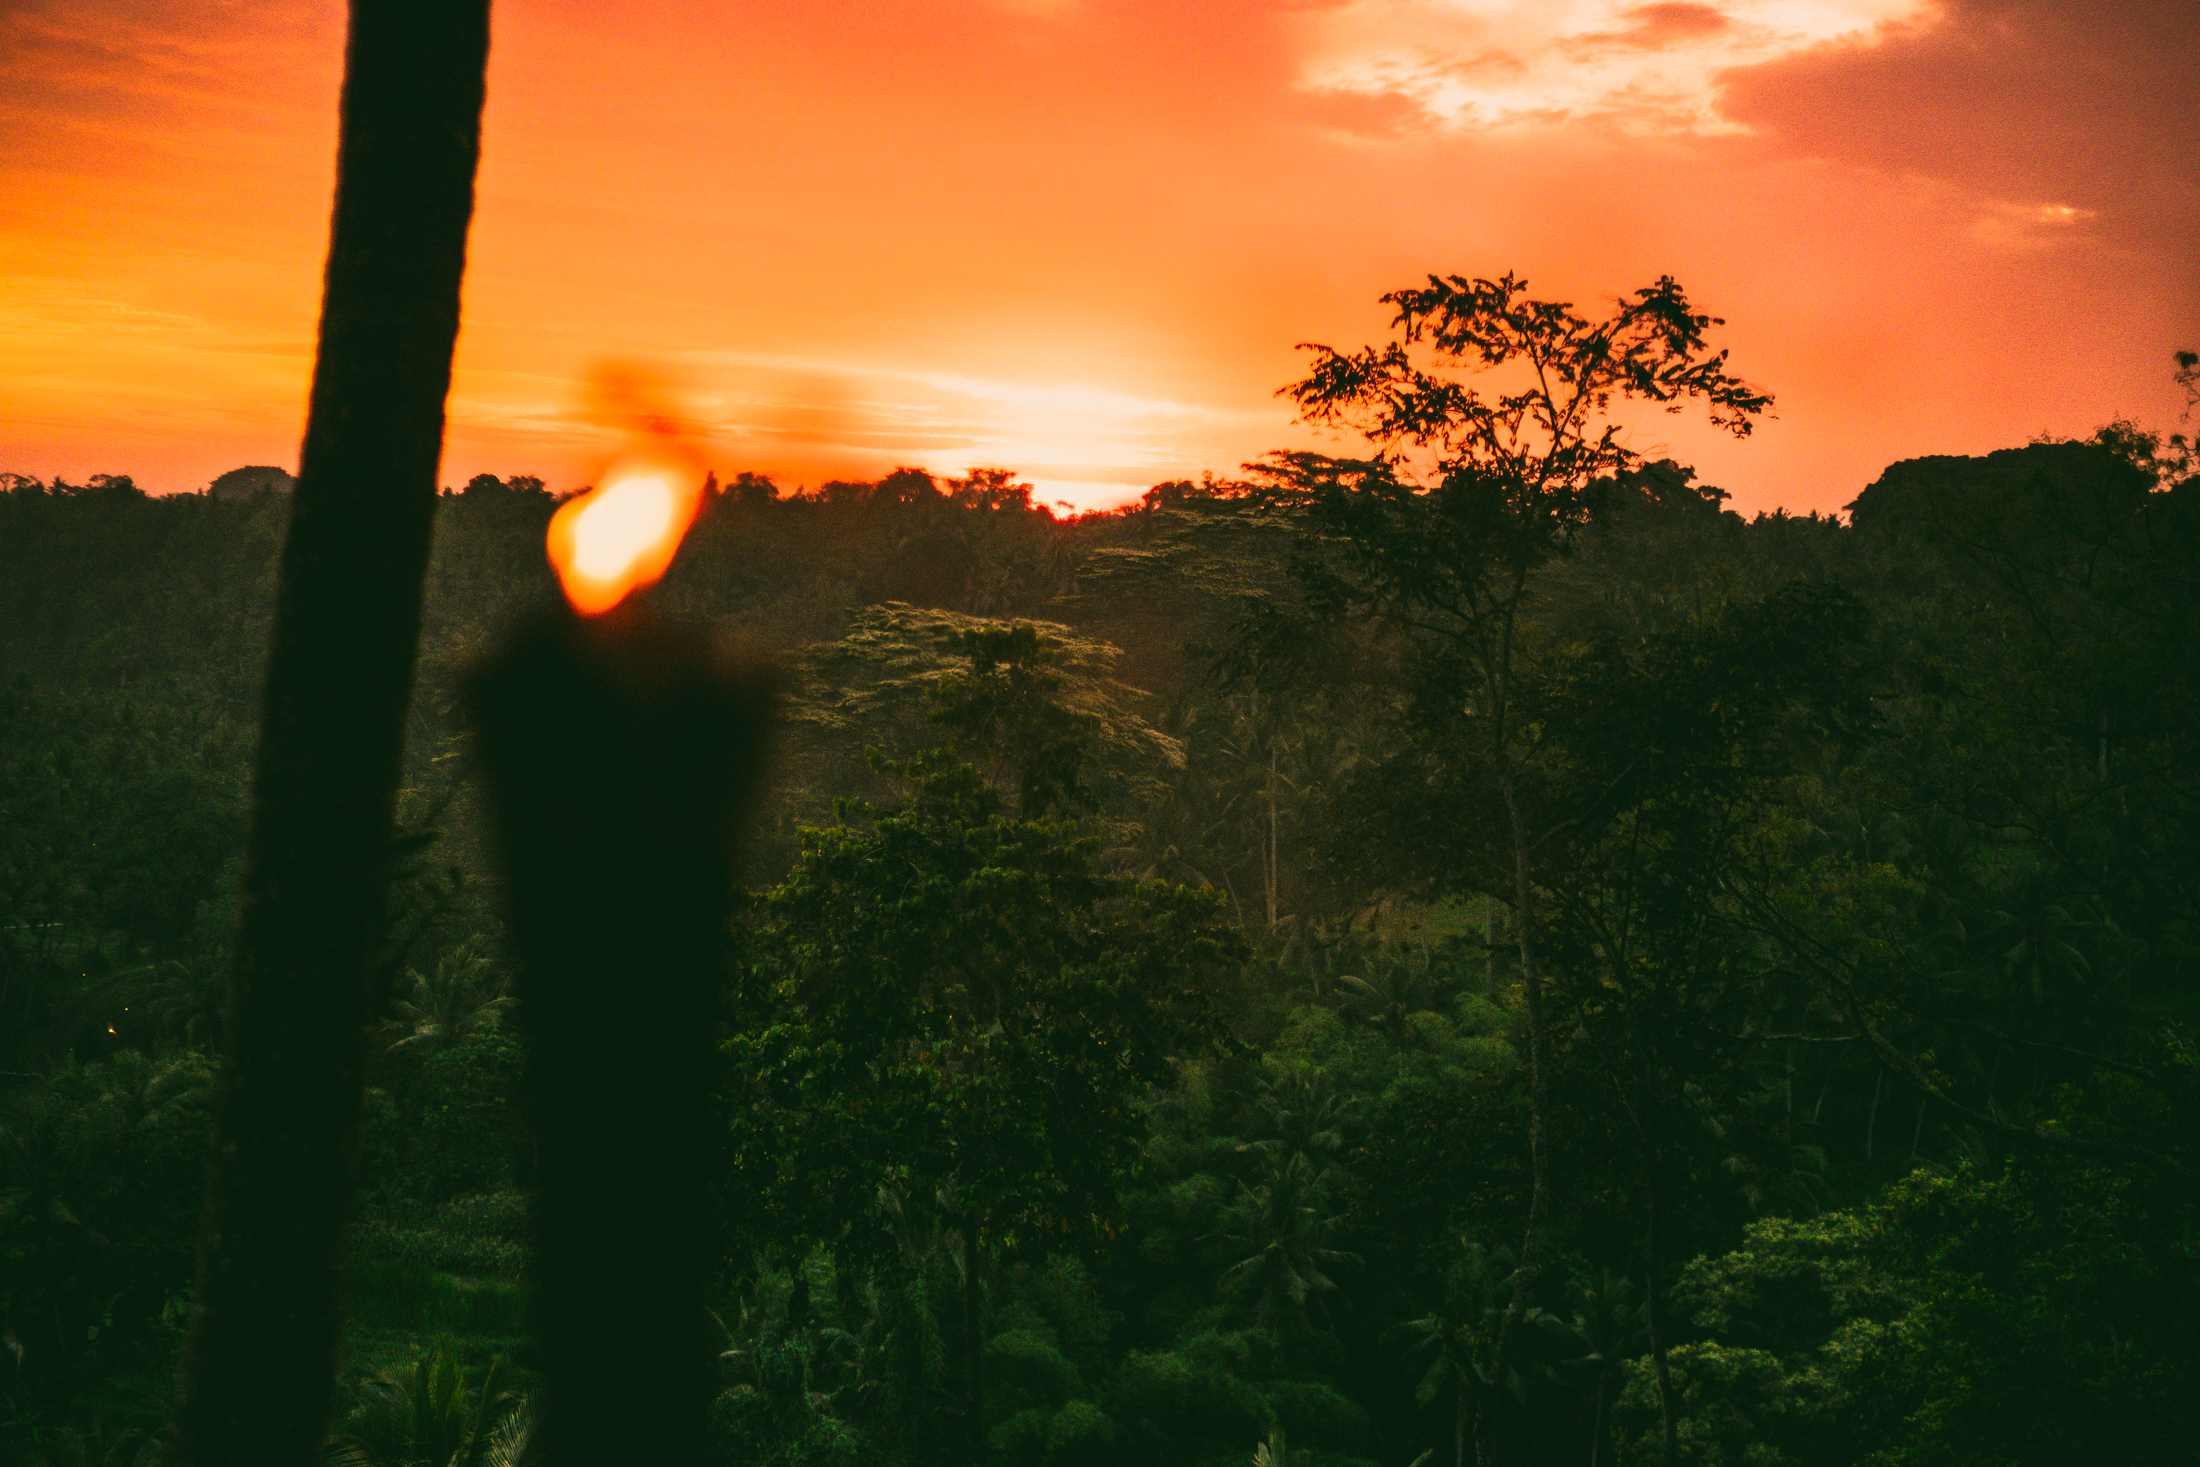 My first Balinese sunset from the Sayan House